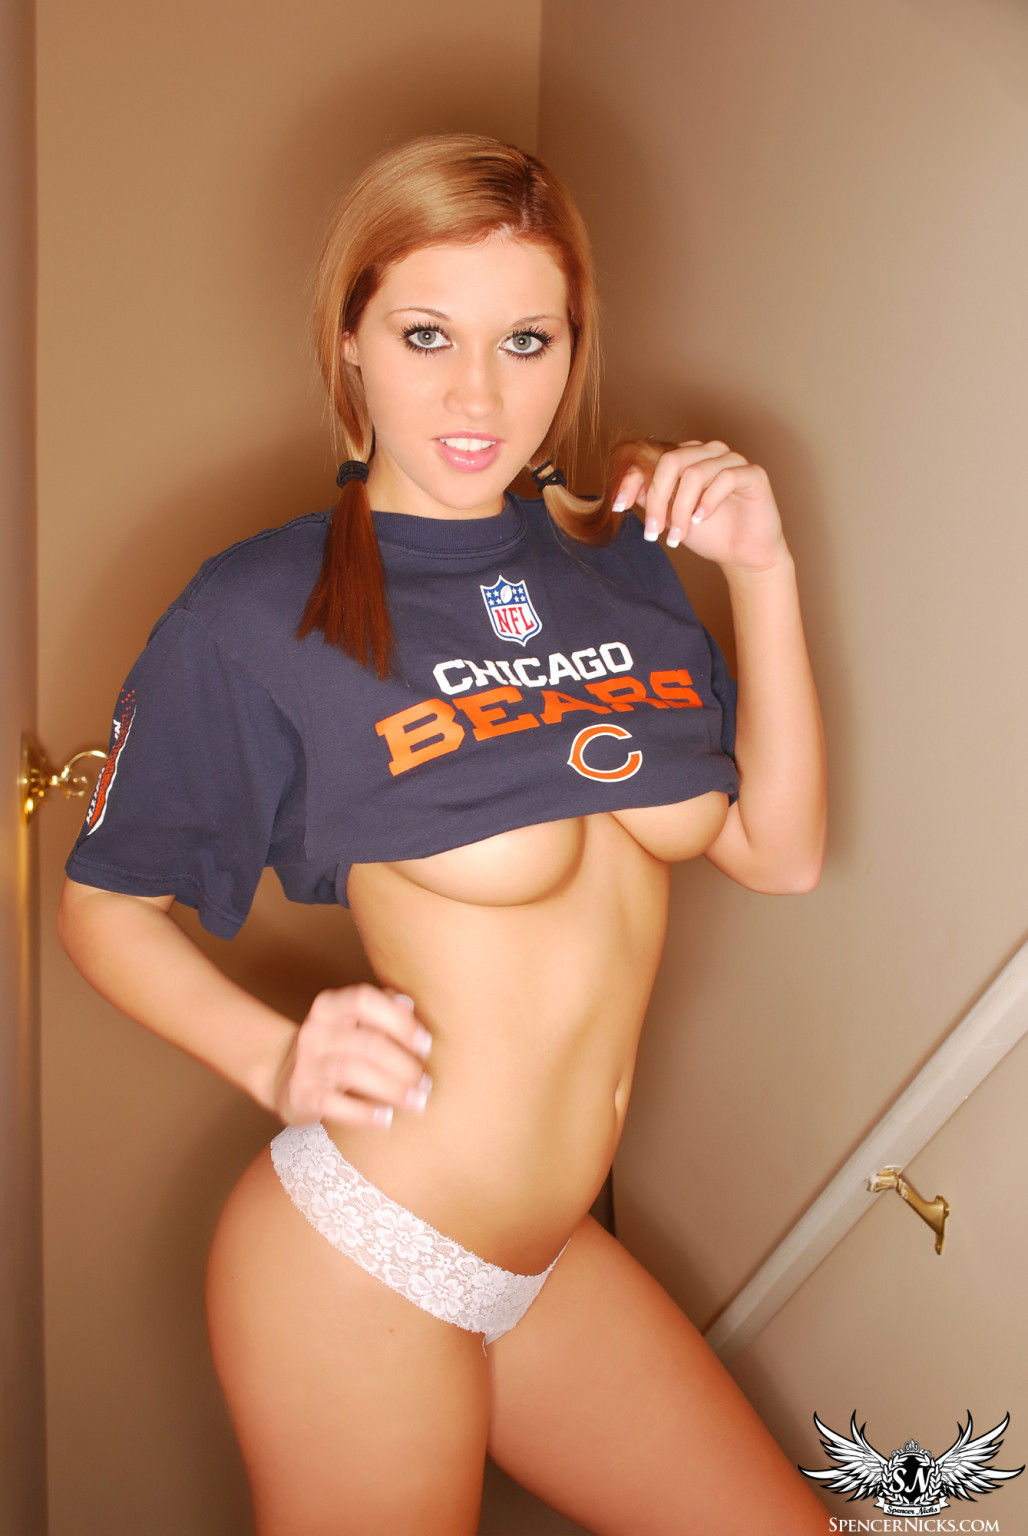 Spencer nicks hottest chicago bears adorer